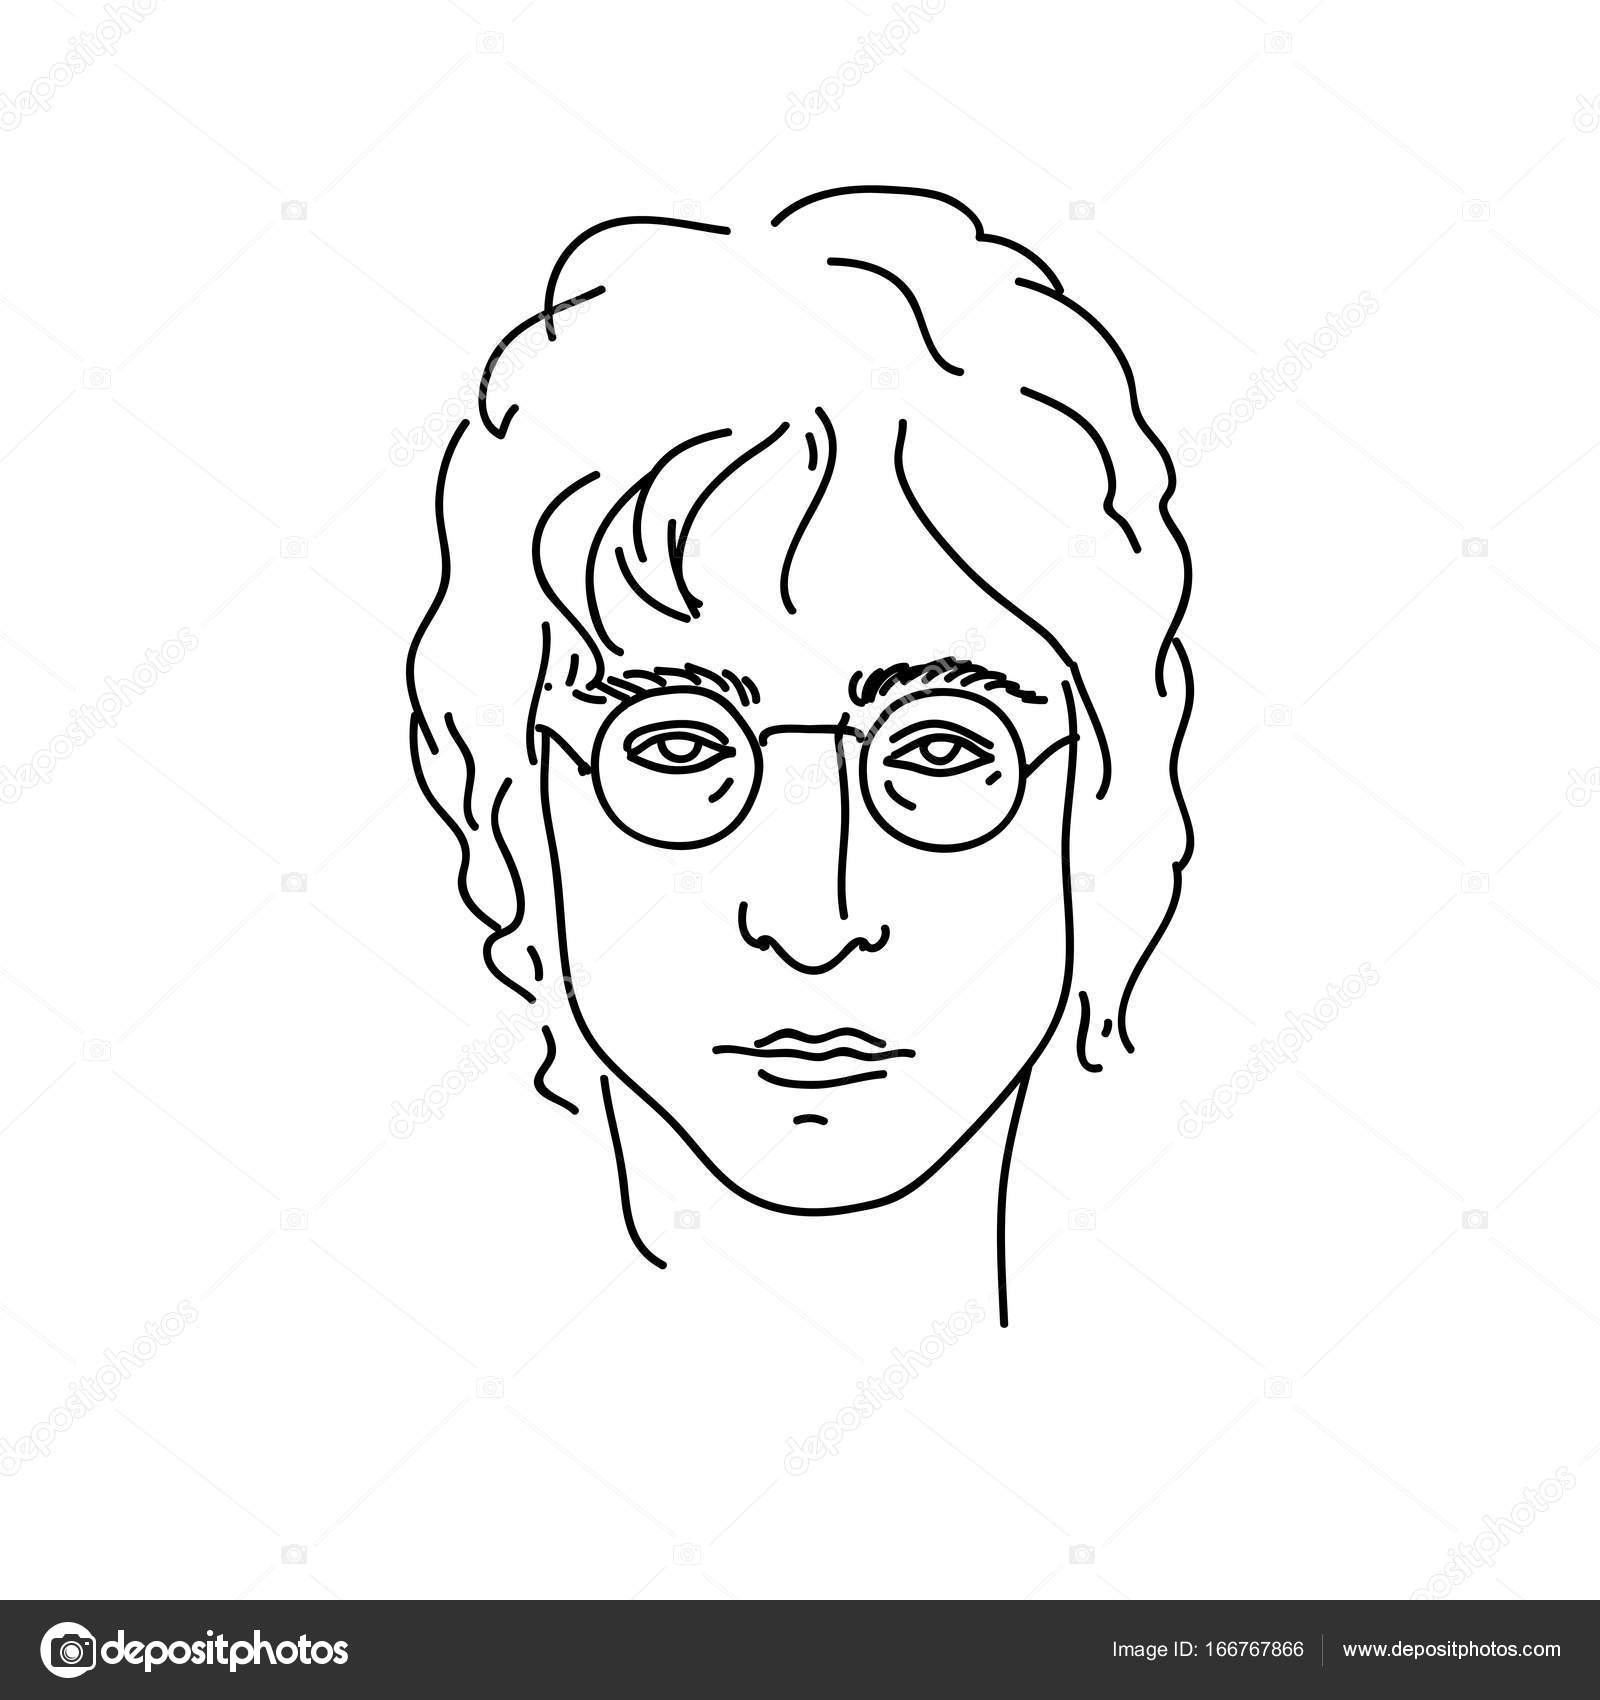 September 19 2017 Creative Portrait Of John Lennon Musician From Beatles Line Art Vector Illustration Stock Vector C Maddyz 166767866